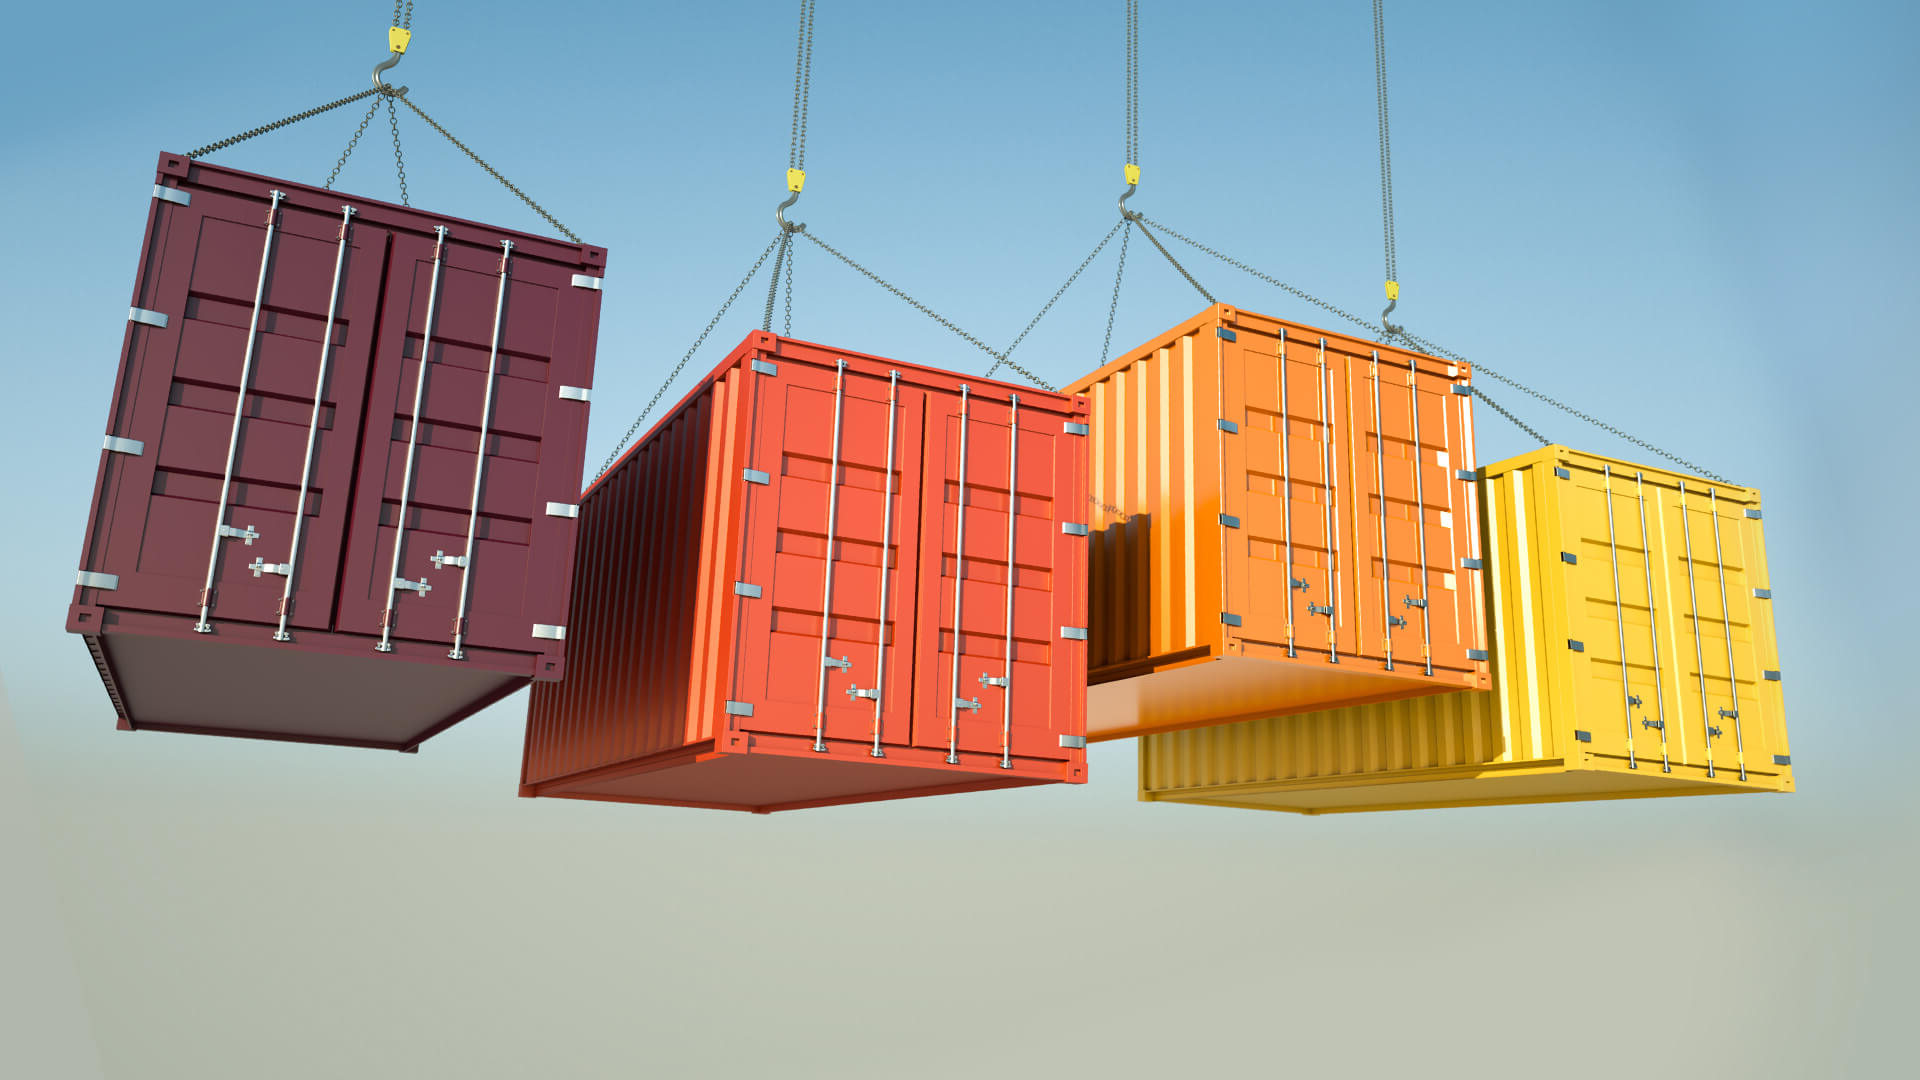 http://www.norcalcontainers.com/wp-content/uploads/2015/10/banner-2-1.jpg